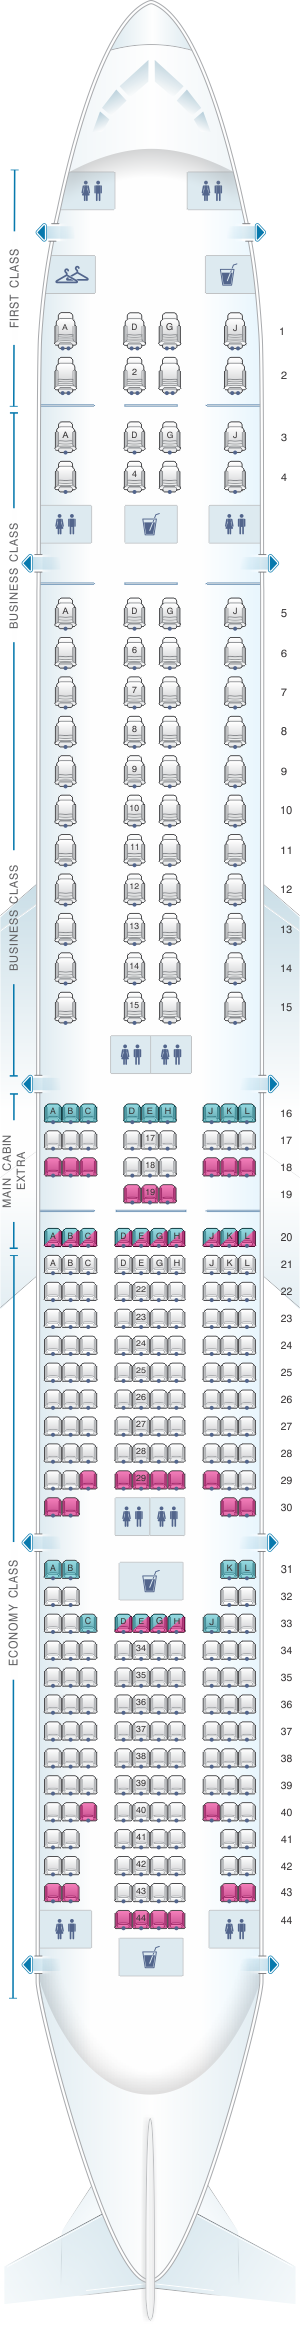 Seat map for American Airlines Boeing B777 300ER